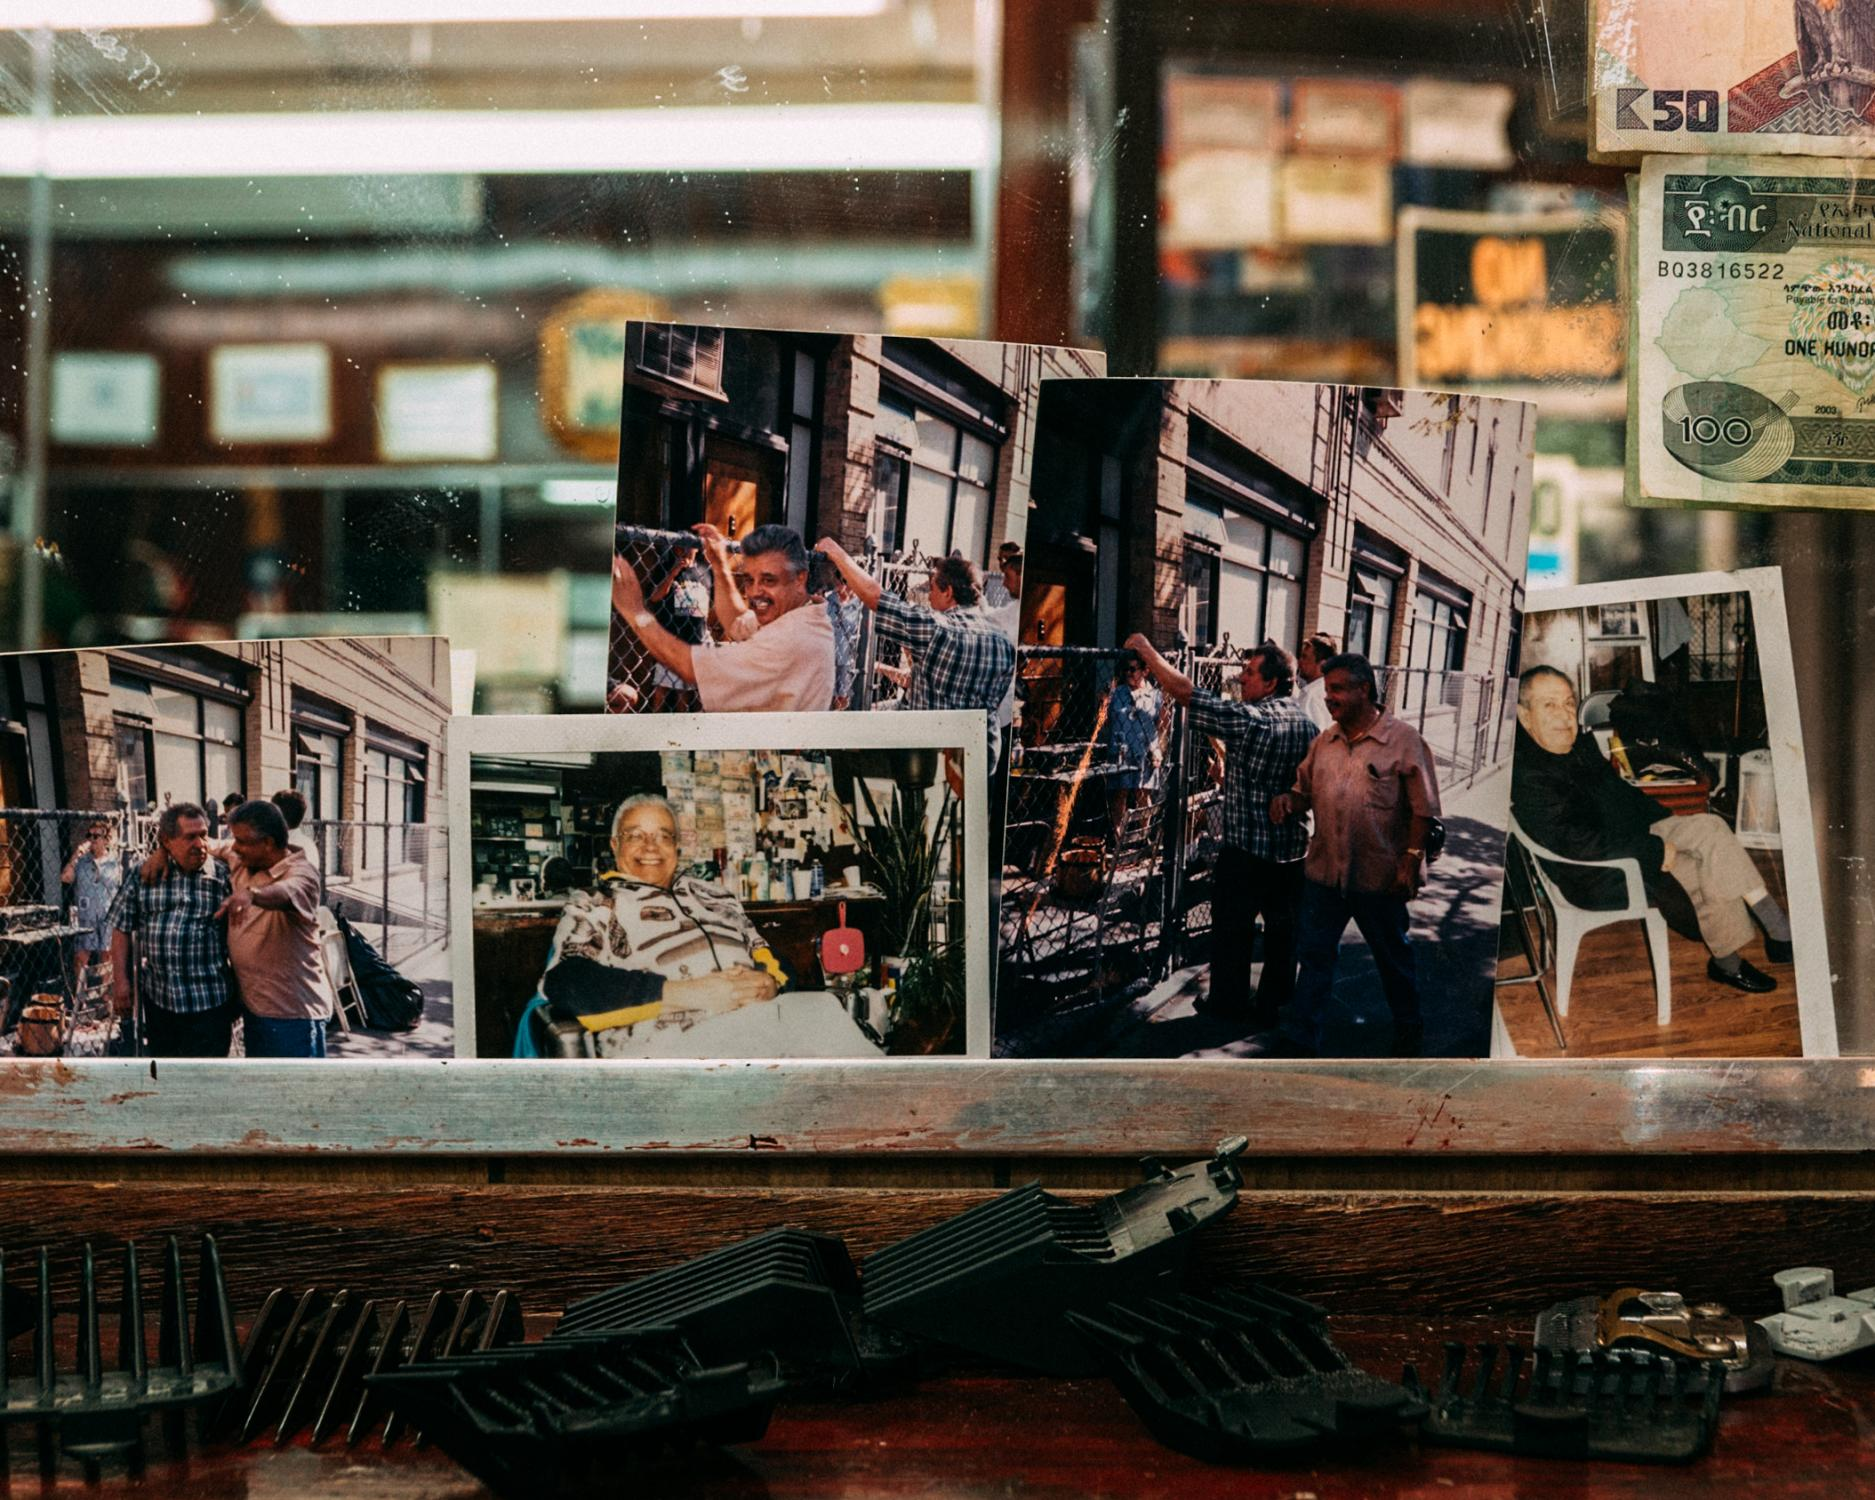 Photographs displaying moments from the barbershop's earlier years hang above a shelf inside the barbershop created out of a small garage on Suydam Avenue in the Bushwick neighborhood of Brooklyn.